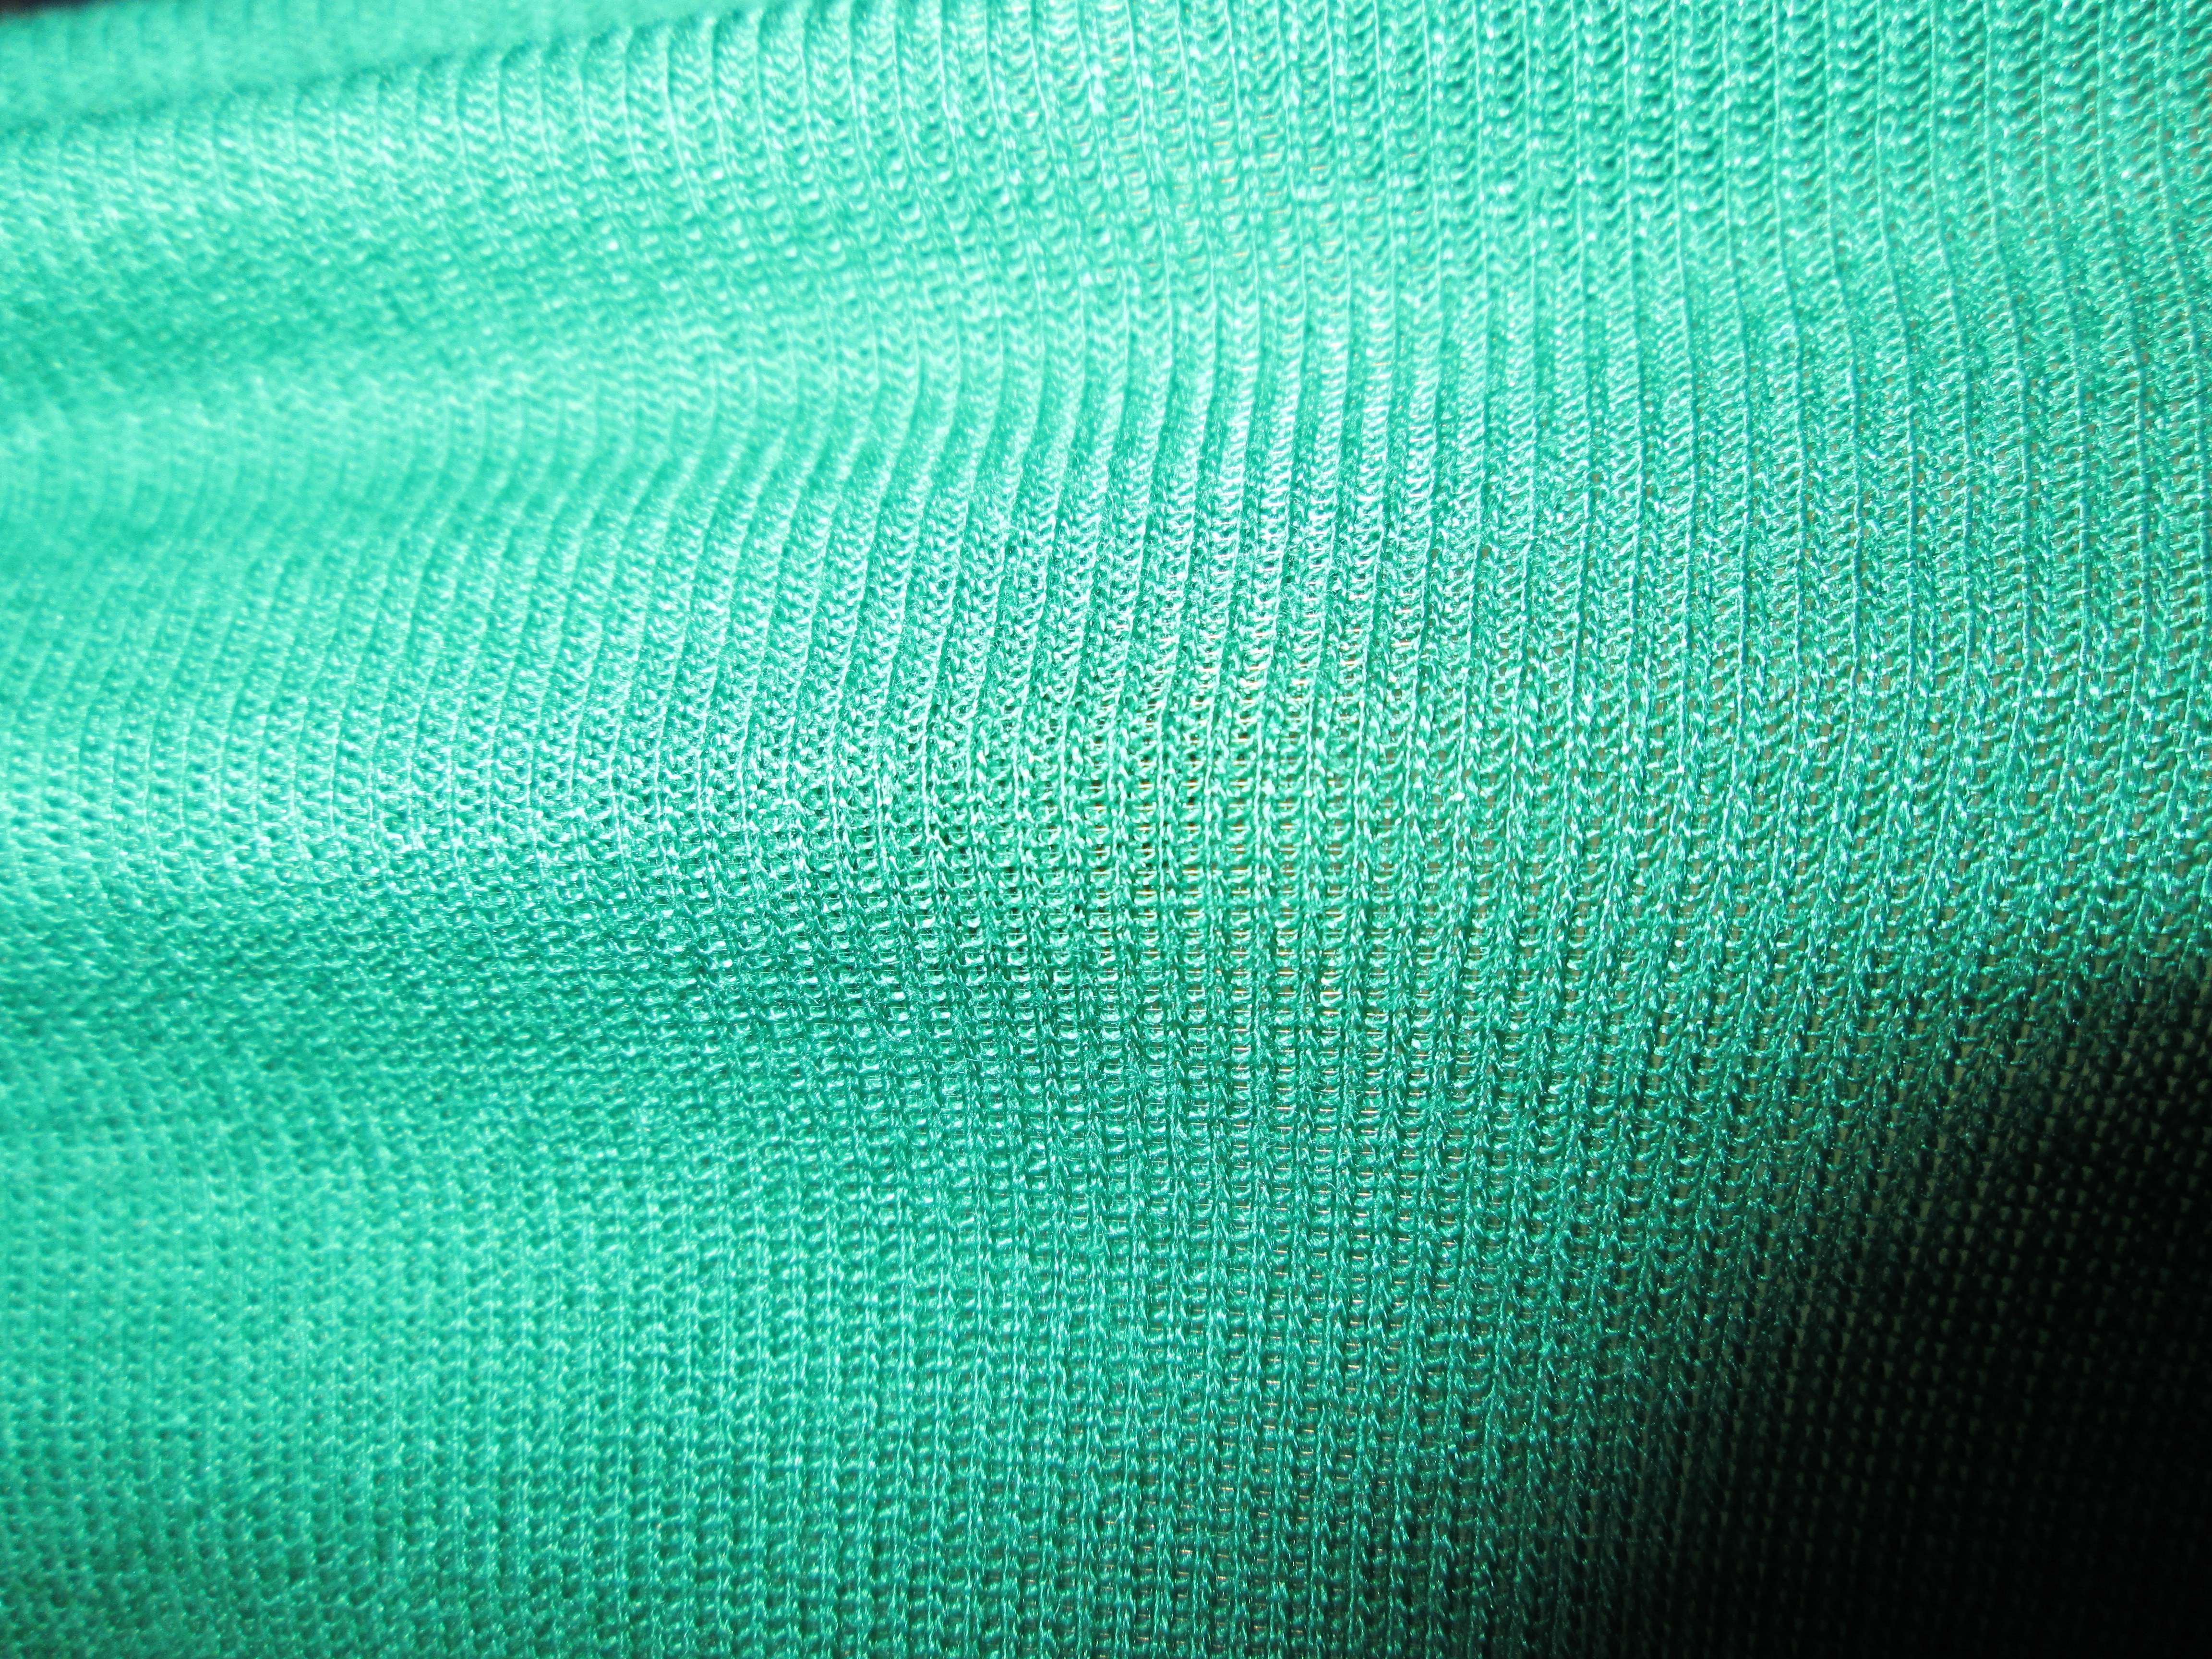 Knitting Fabric : Fabric for beginners part one the basics sew me your stuff